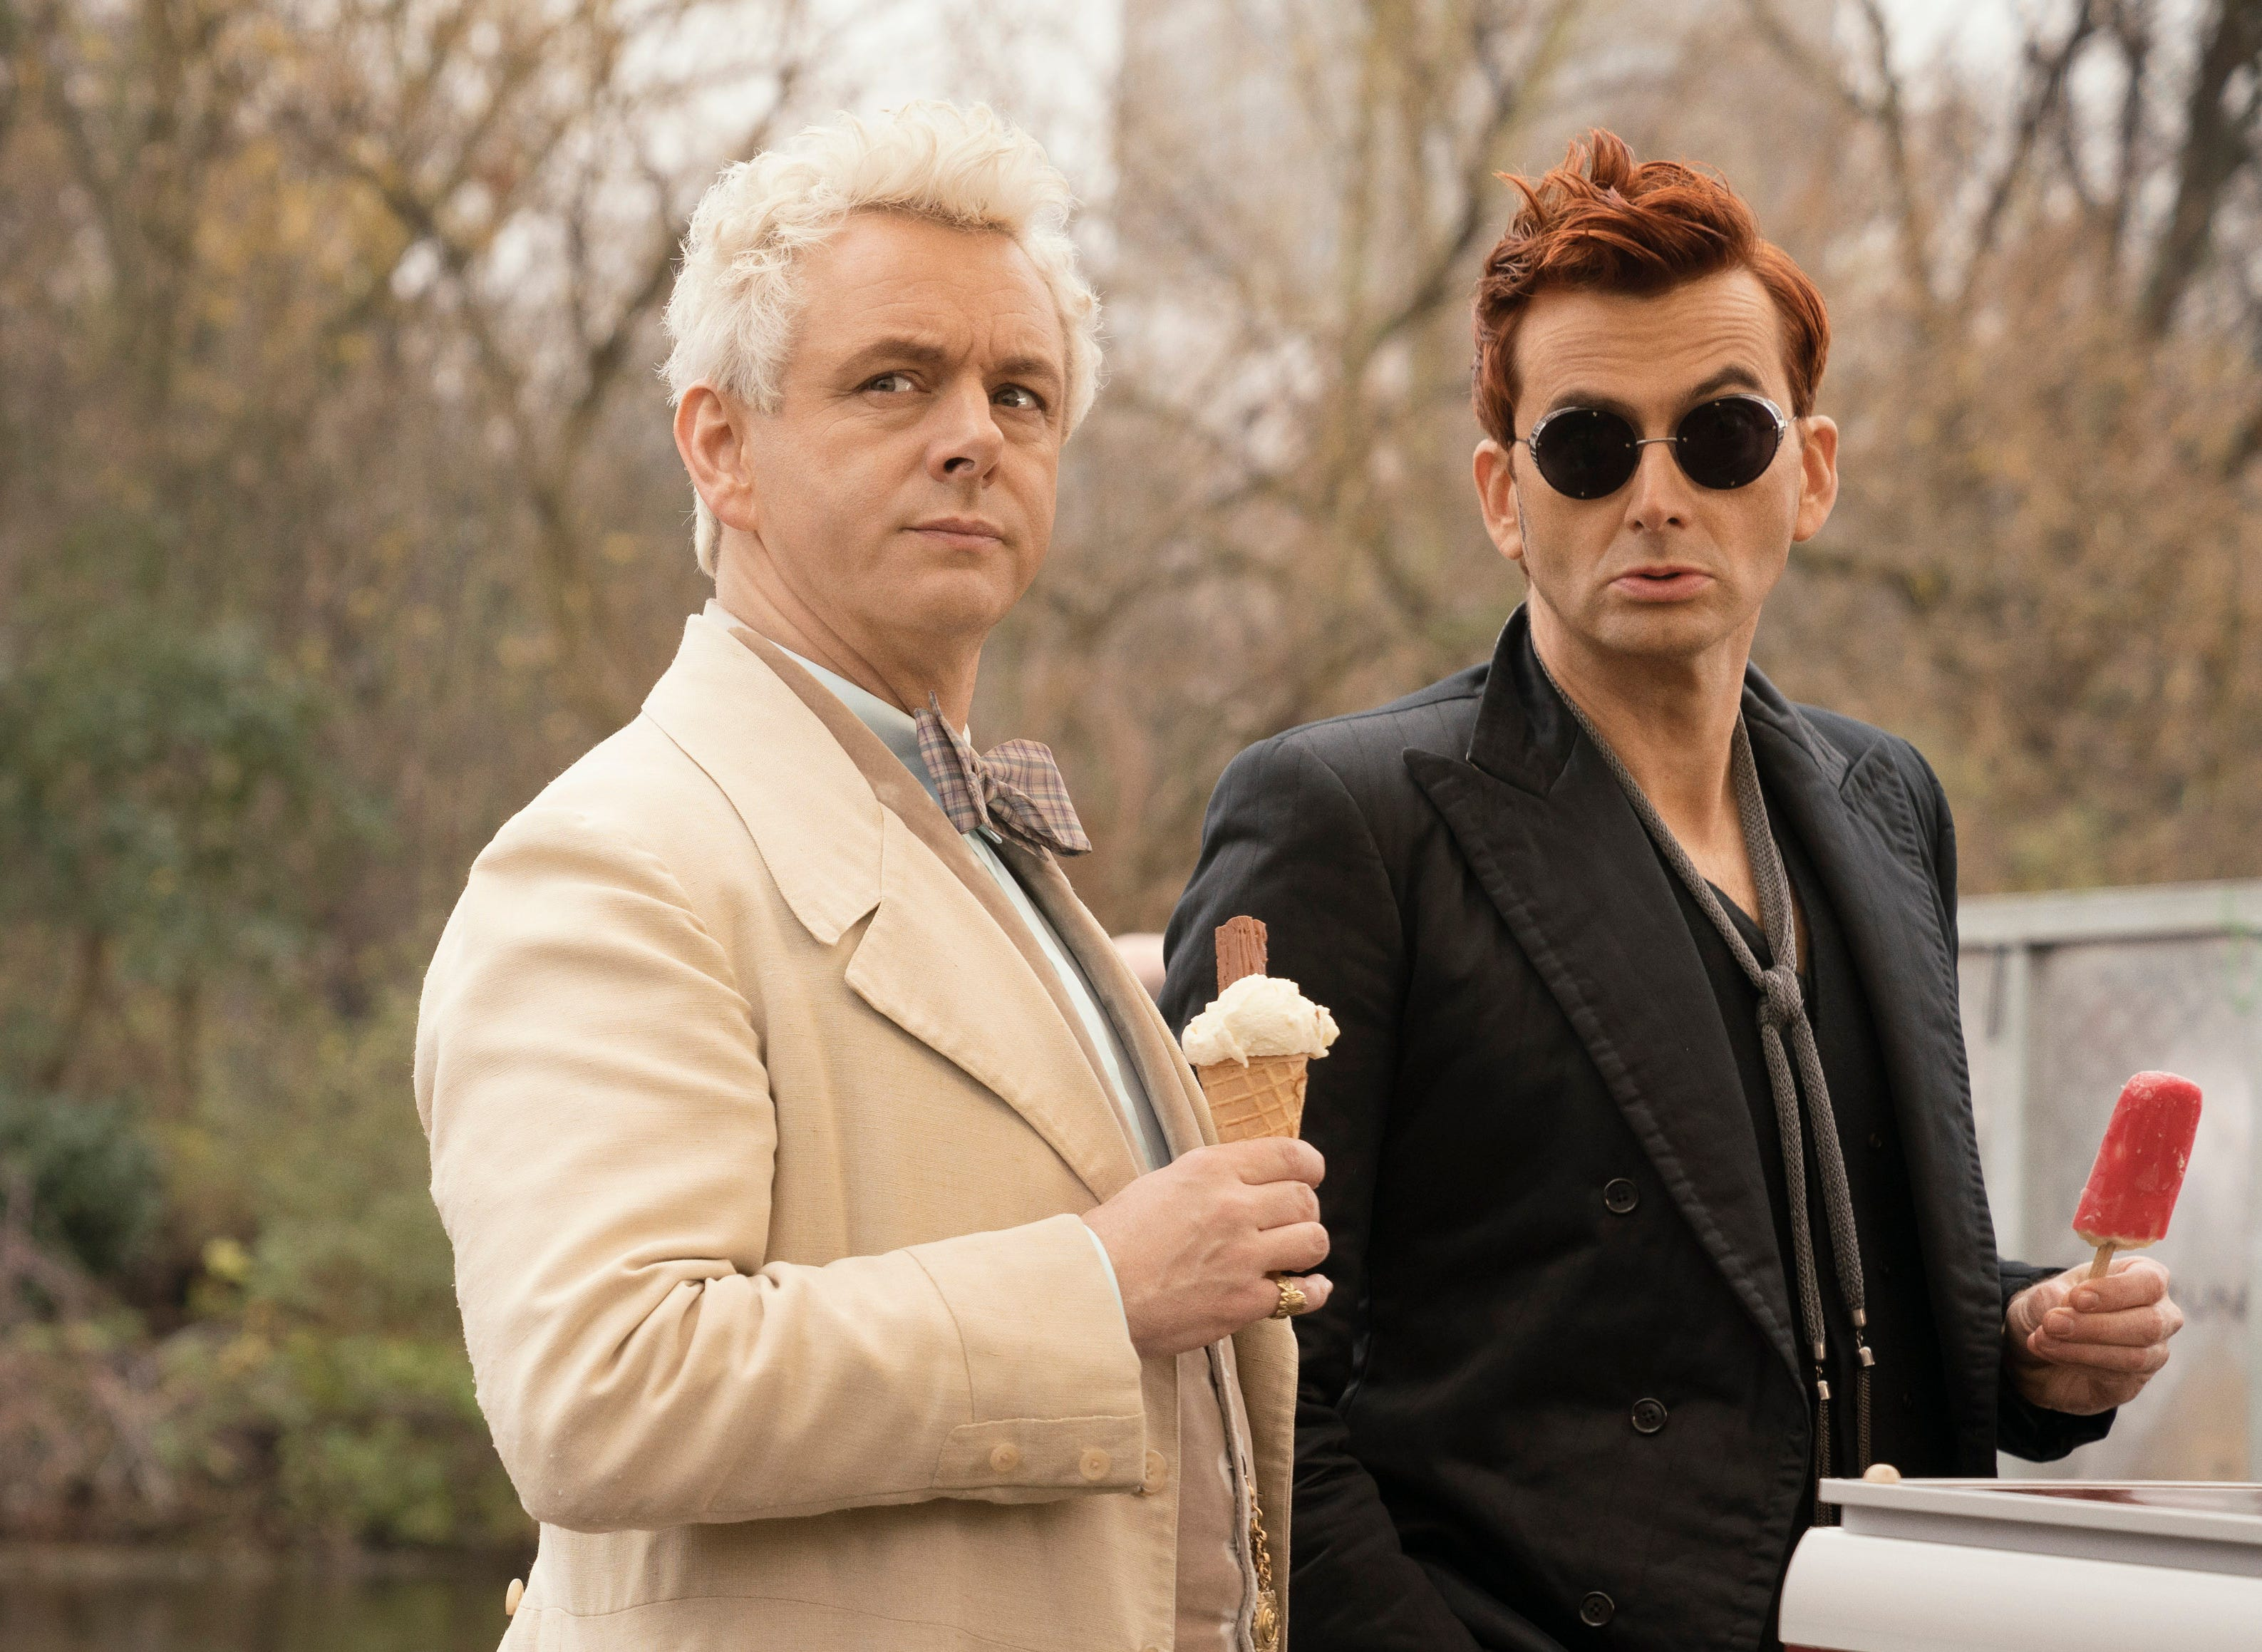 """Martin Sheen stars as the angel Aziraphale and David Tennant as the demon Crowley in """"Good Omens."""" (Photo: CHRIS RAPHAEL/AMAZON)"""